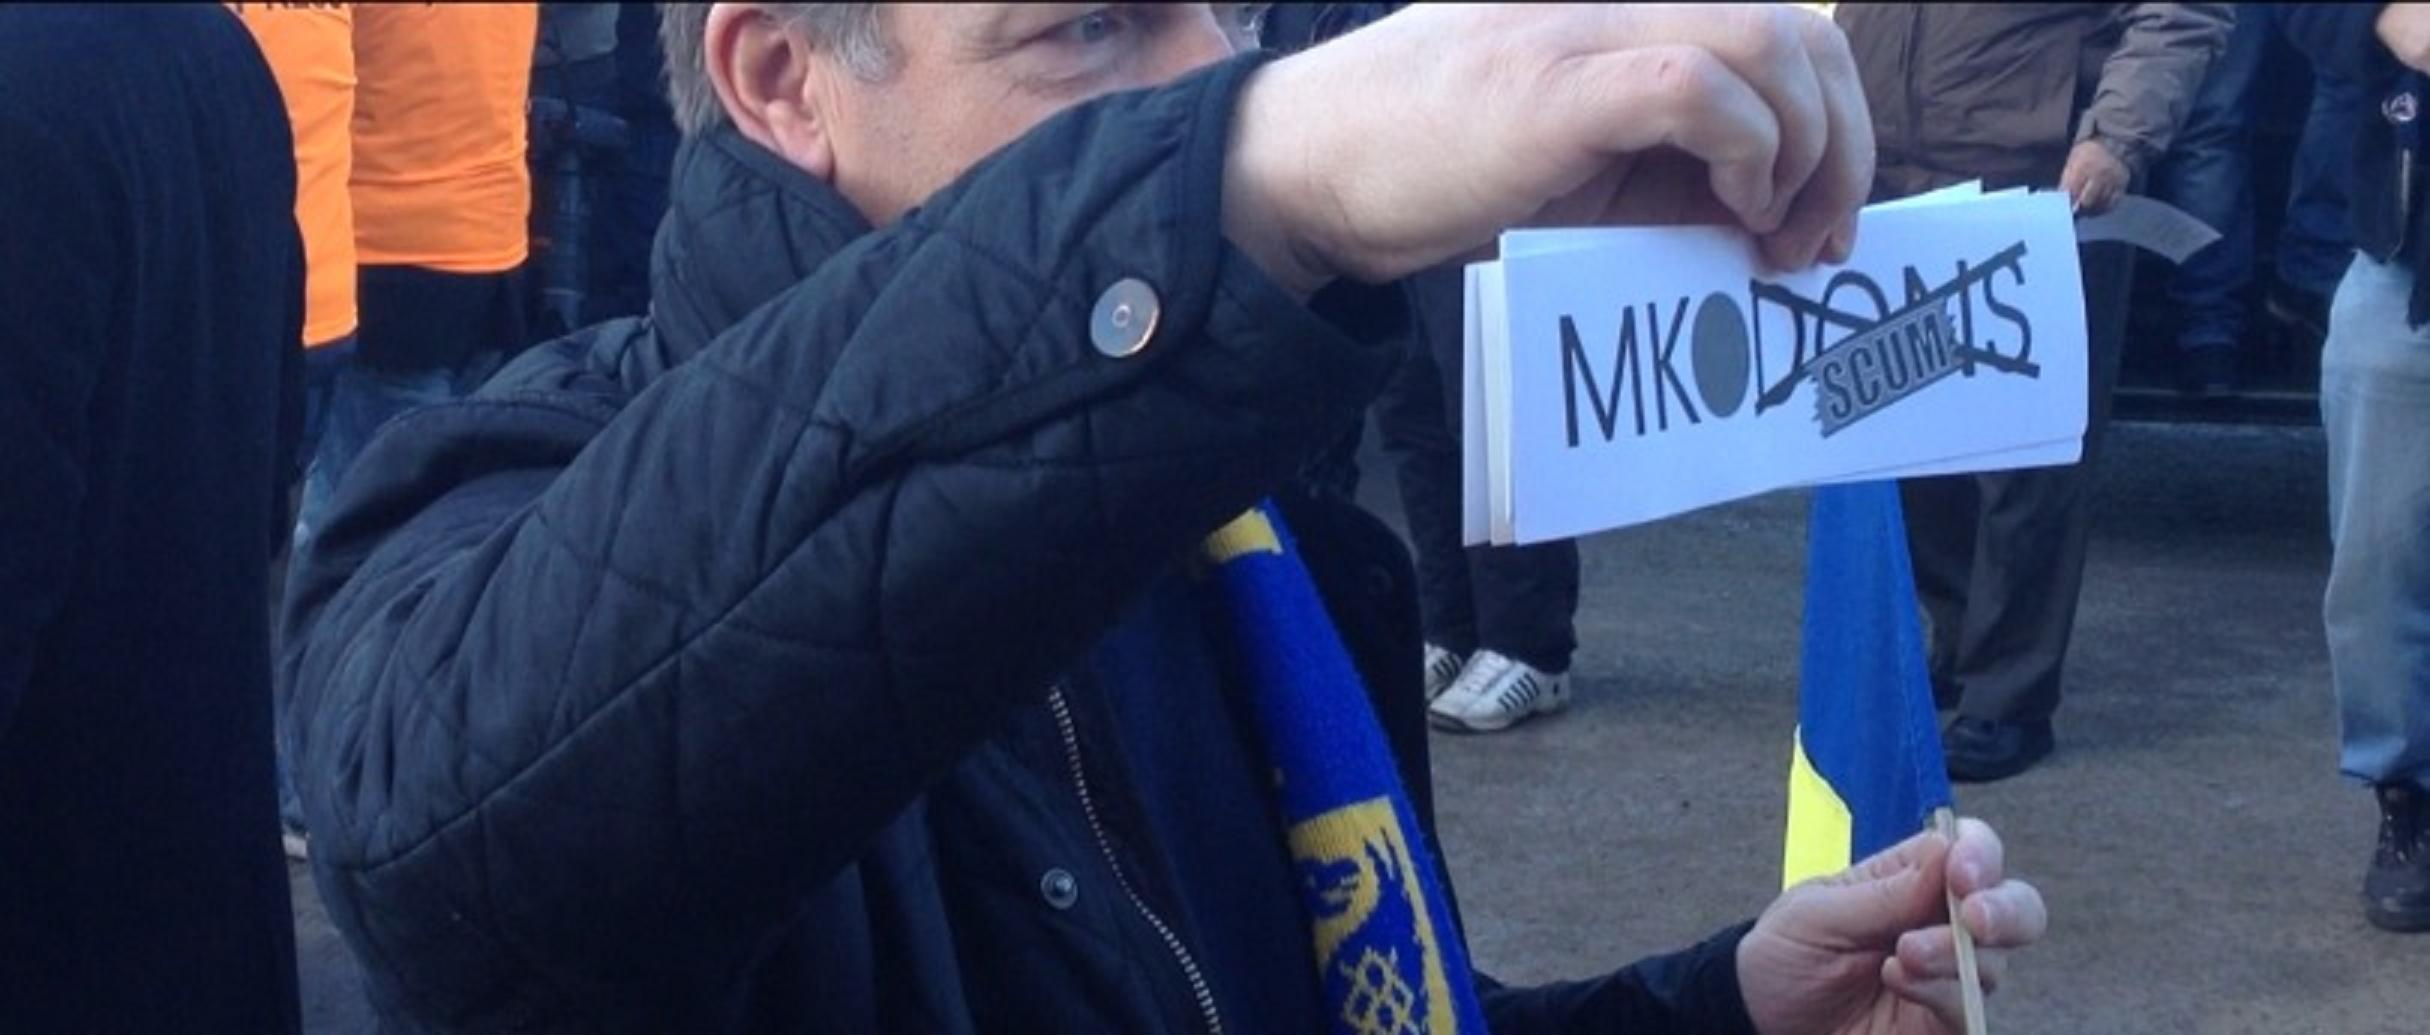 MK Dons v AFC Wimbledon - What did it mean to you?